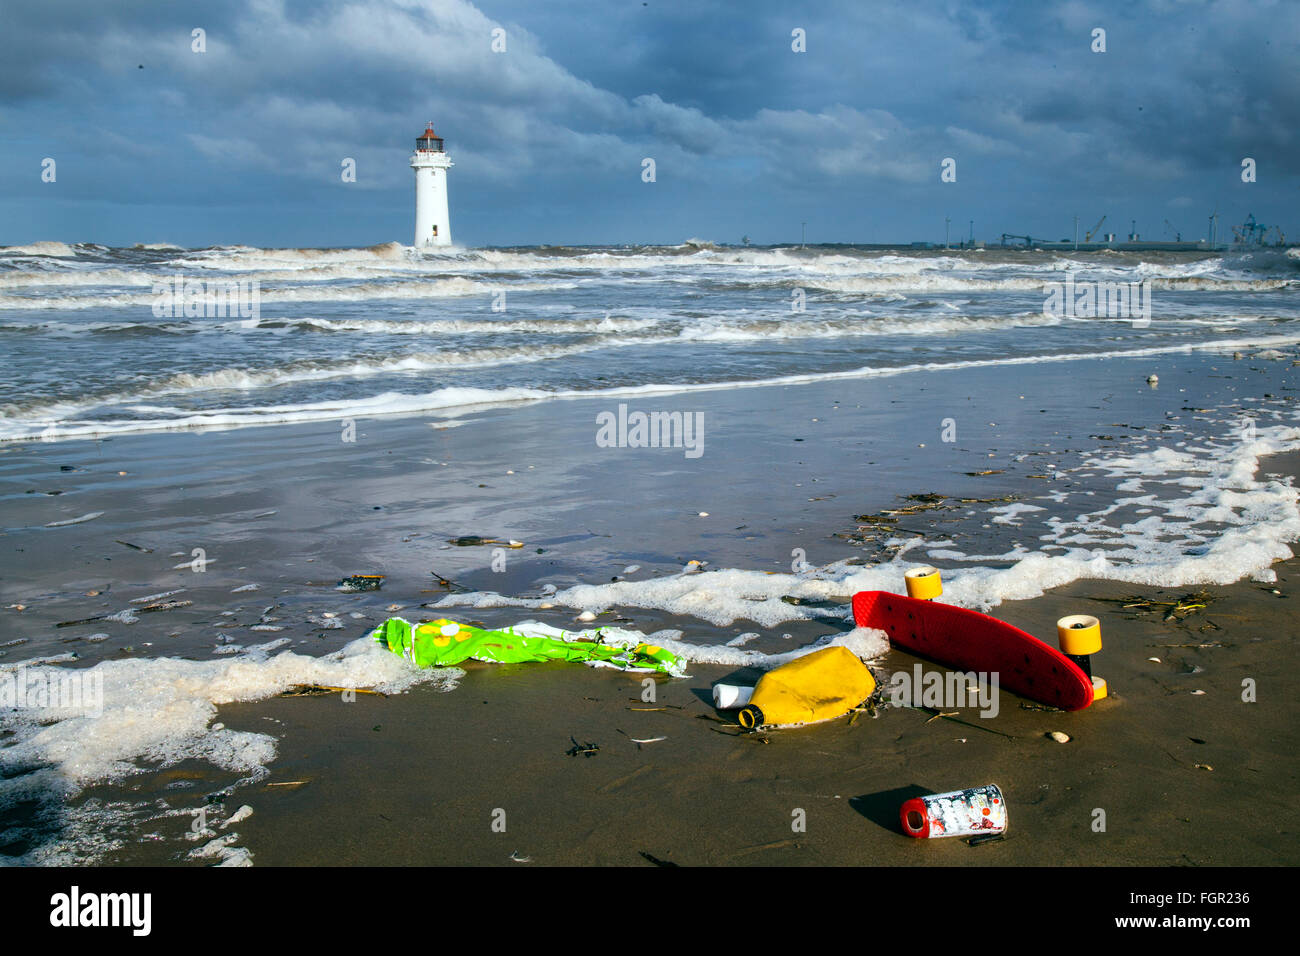 New Brighton, Wallasey, UK. 22nd Feb 2016. UK Weather: Marine beach debris items have become a pervasive pollution - Stock Image